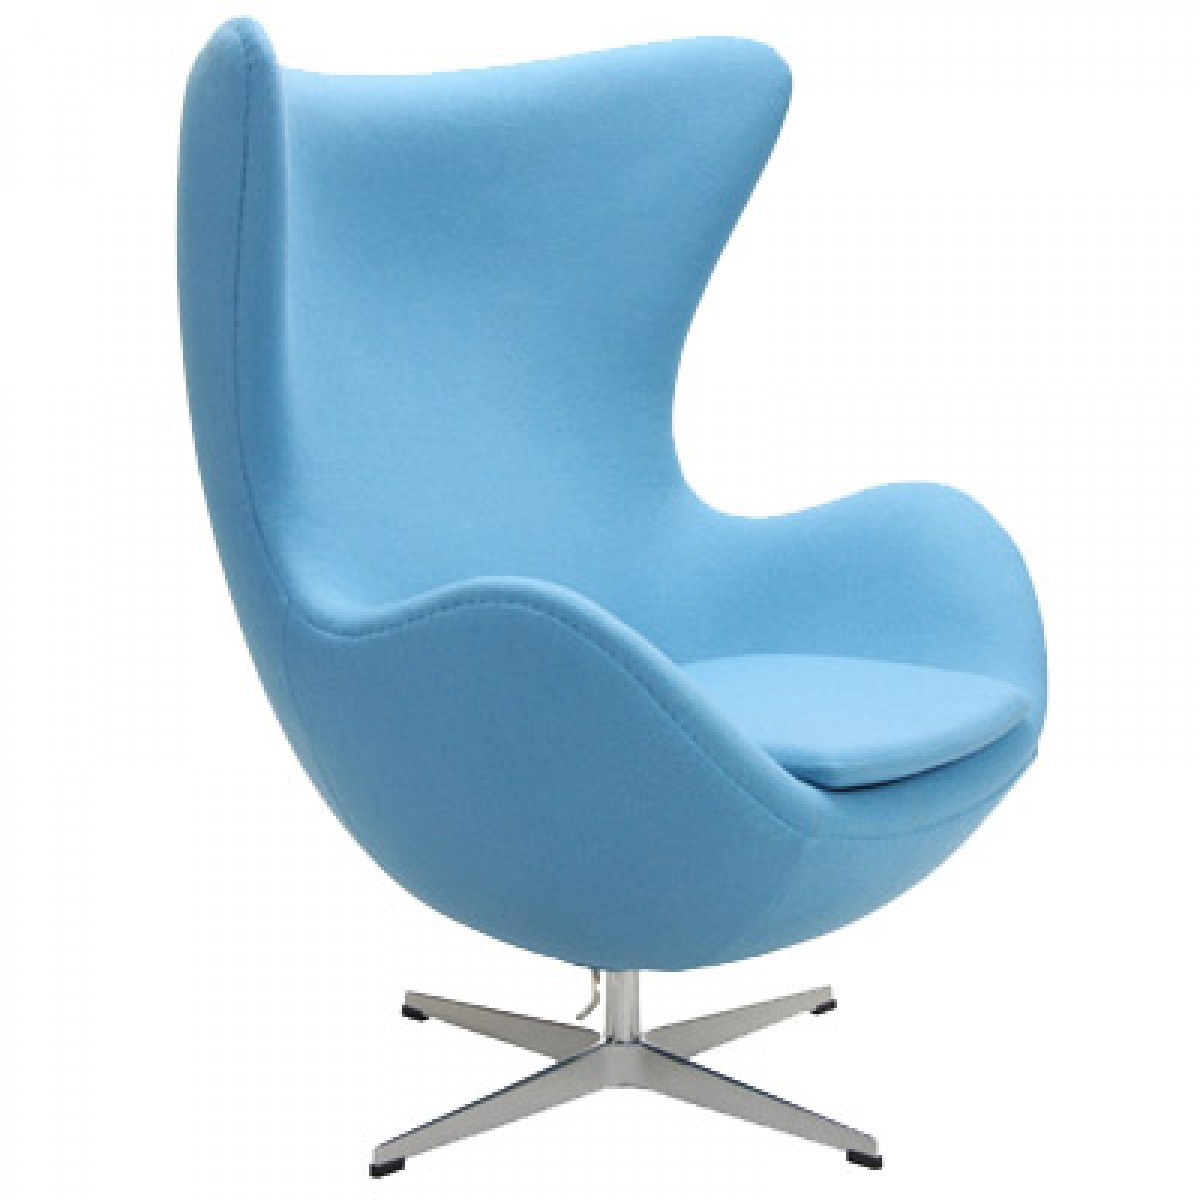 blue egg chair futon sleeper modelling a office tutorials grabcad questions